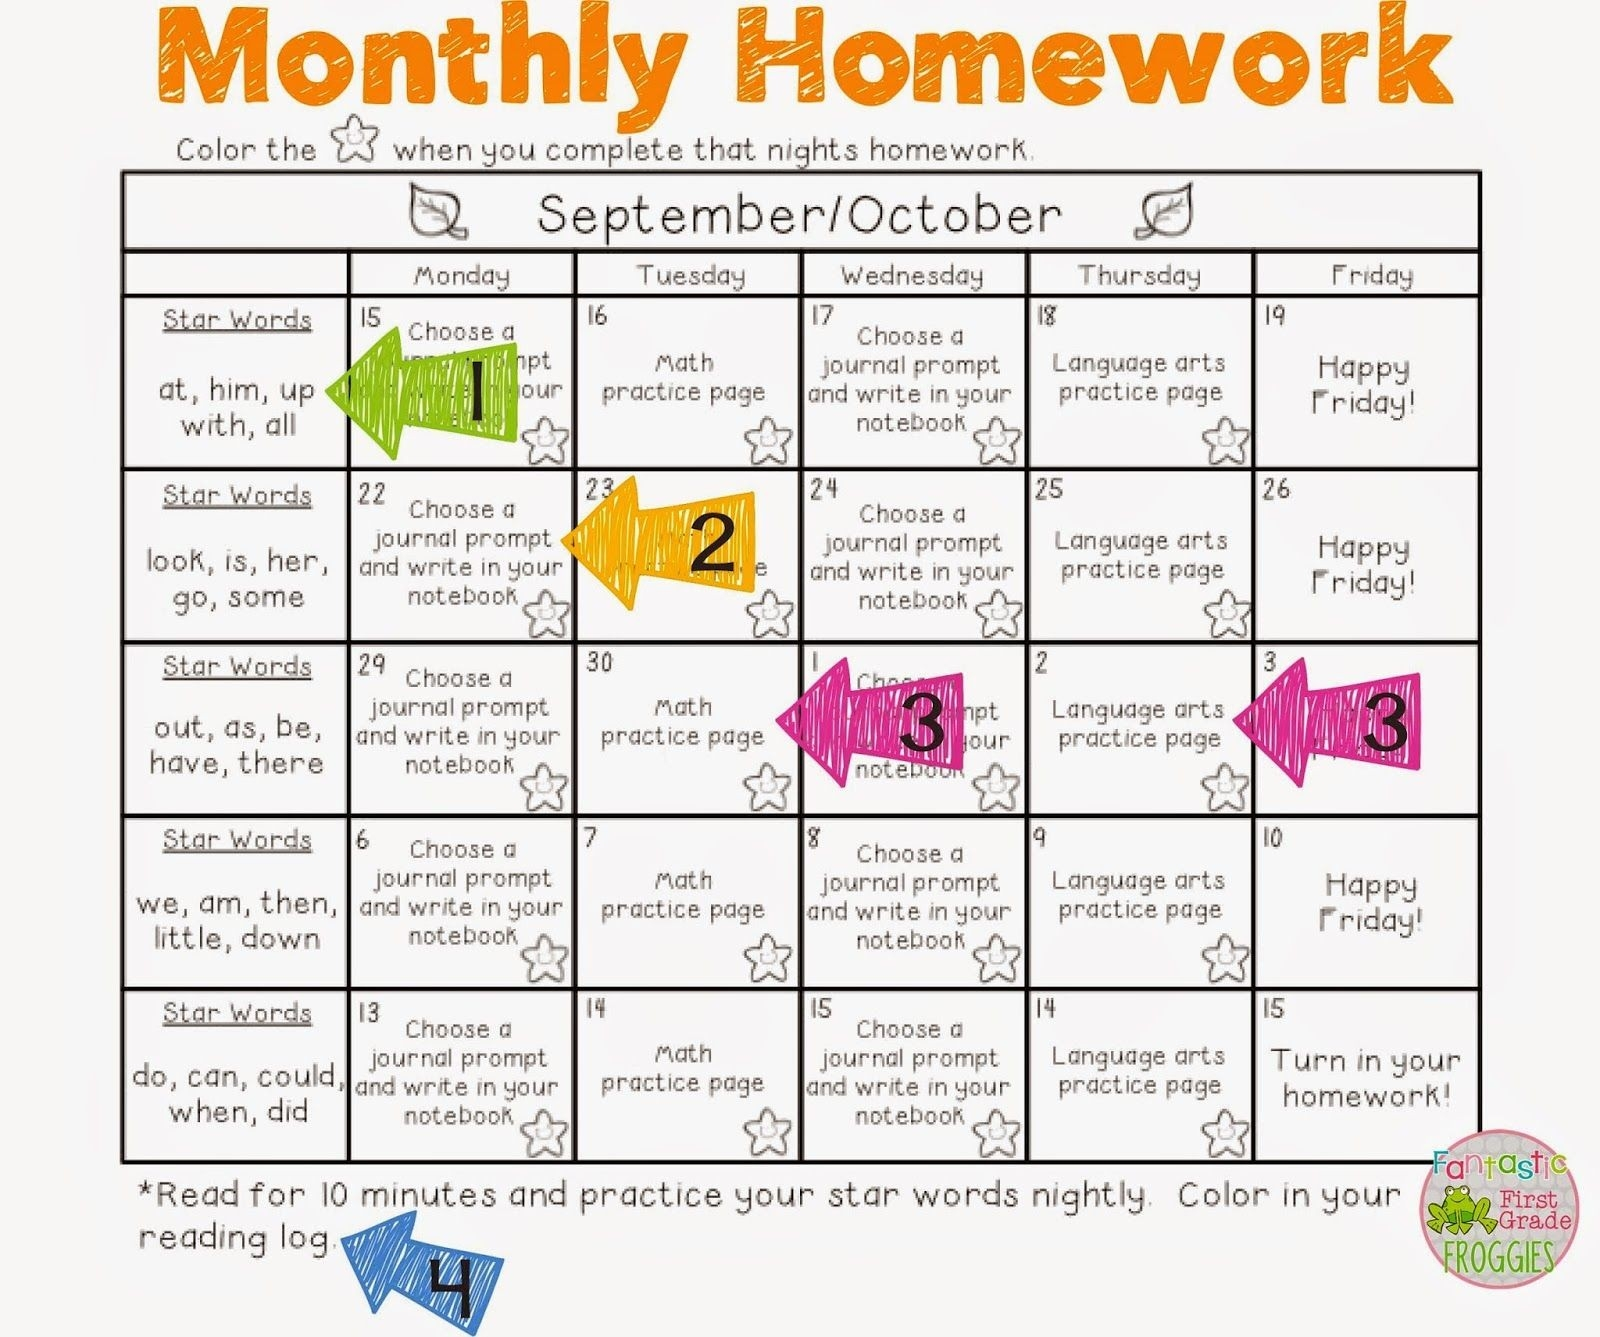 Monthly Homework For Pre-K Students | Calendar Template ...